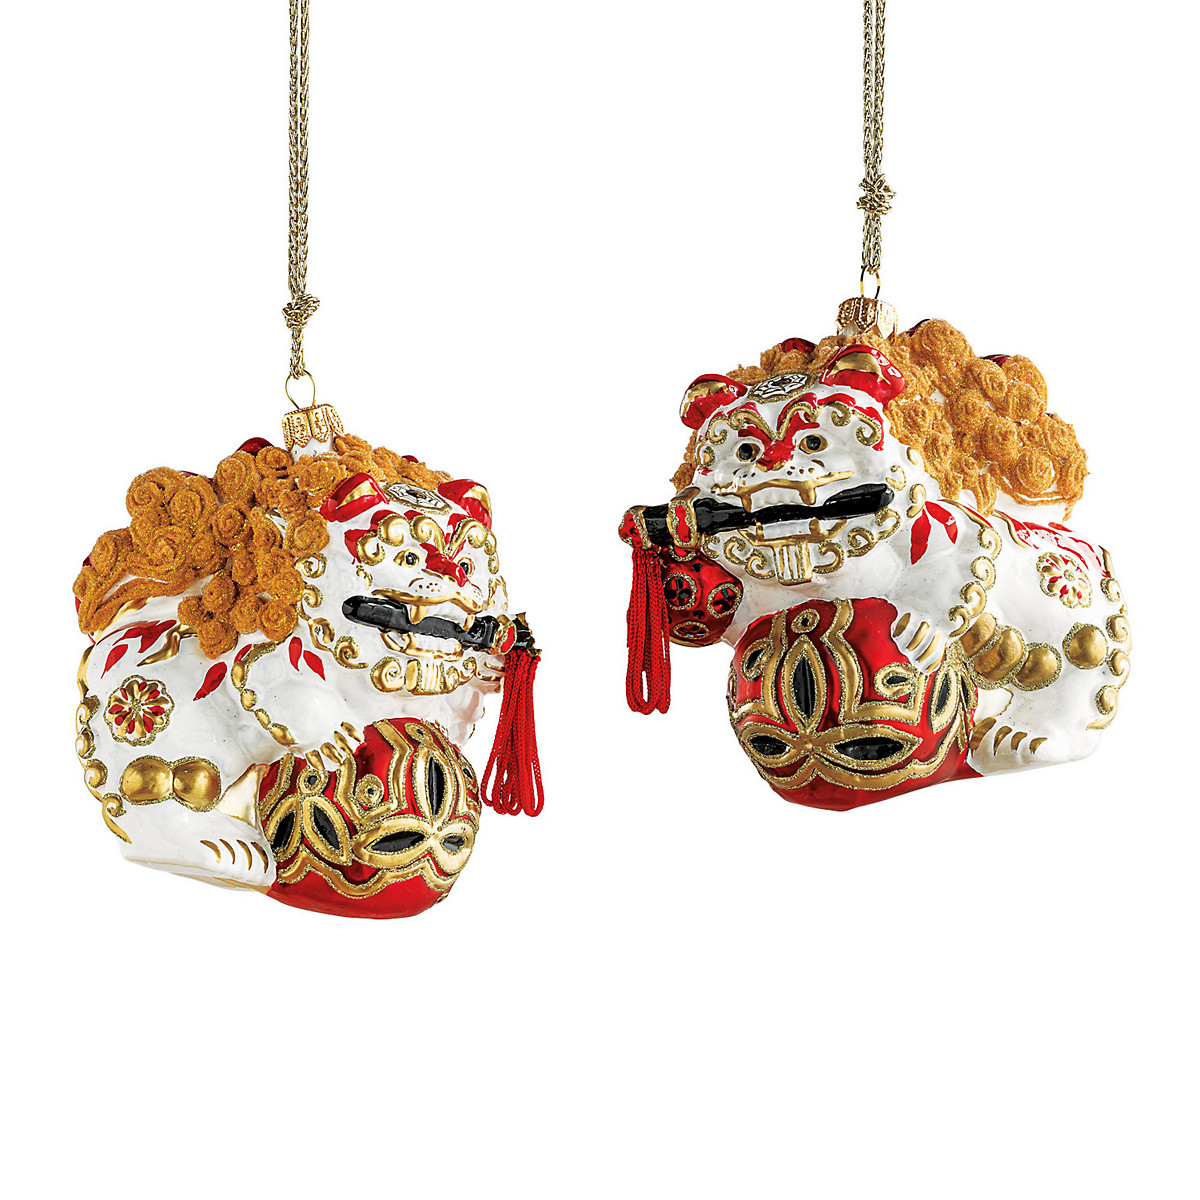 Christmas ornament Sets Best Of Collectible Foo Dog Christmas ornament Set Of Fresh 41 Models Christmas ornament Sets